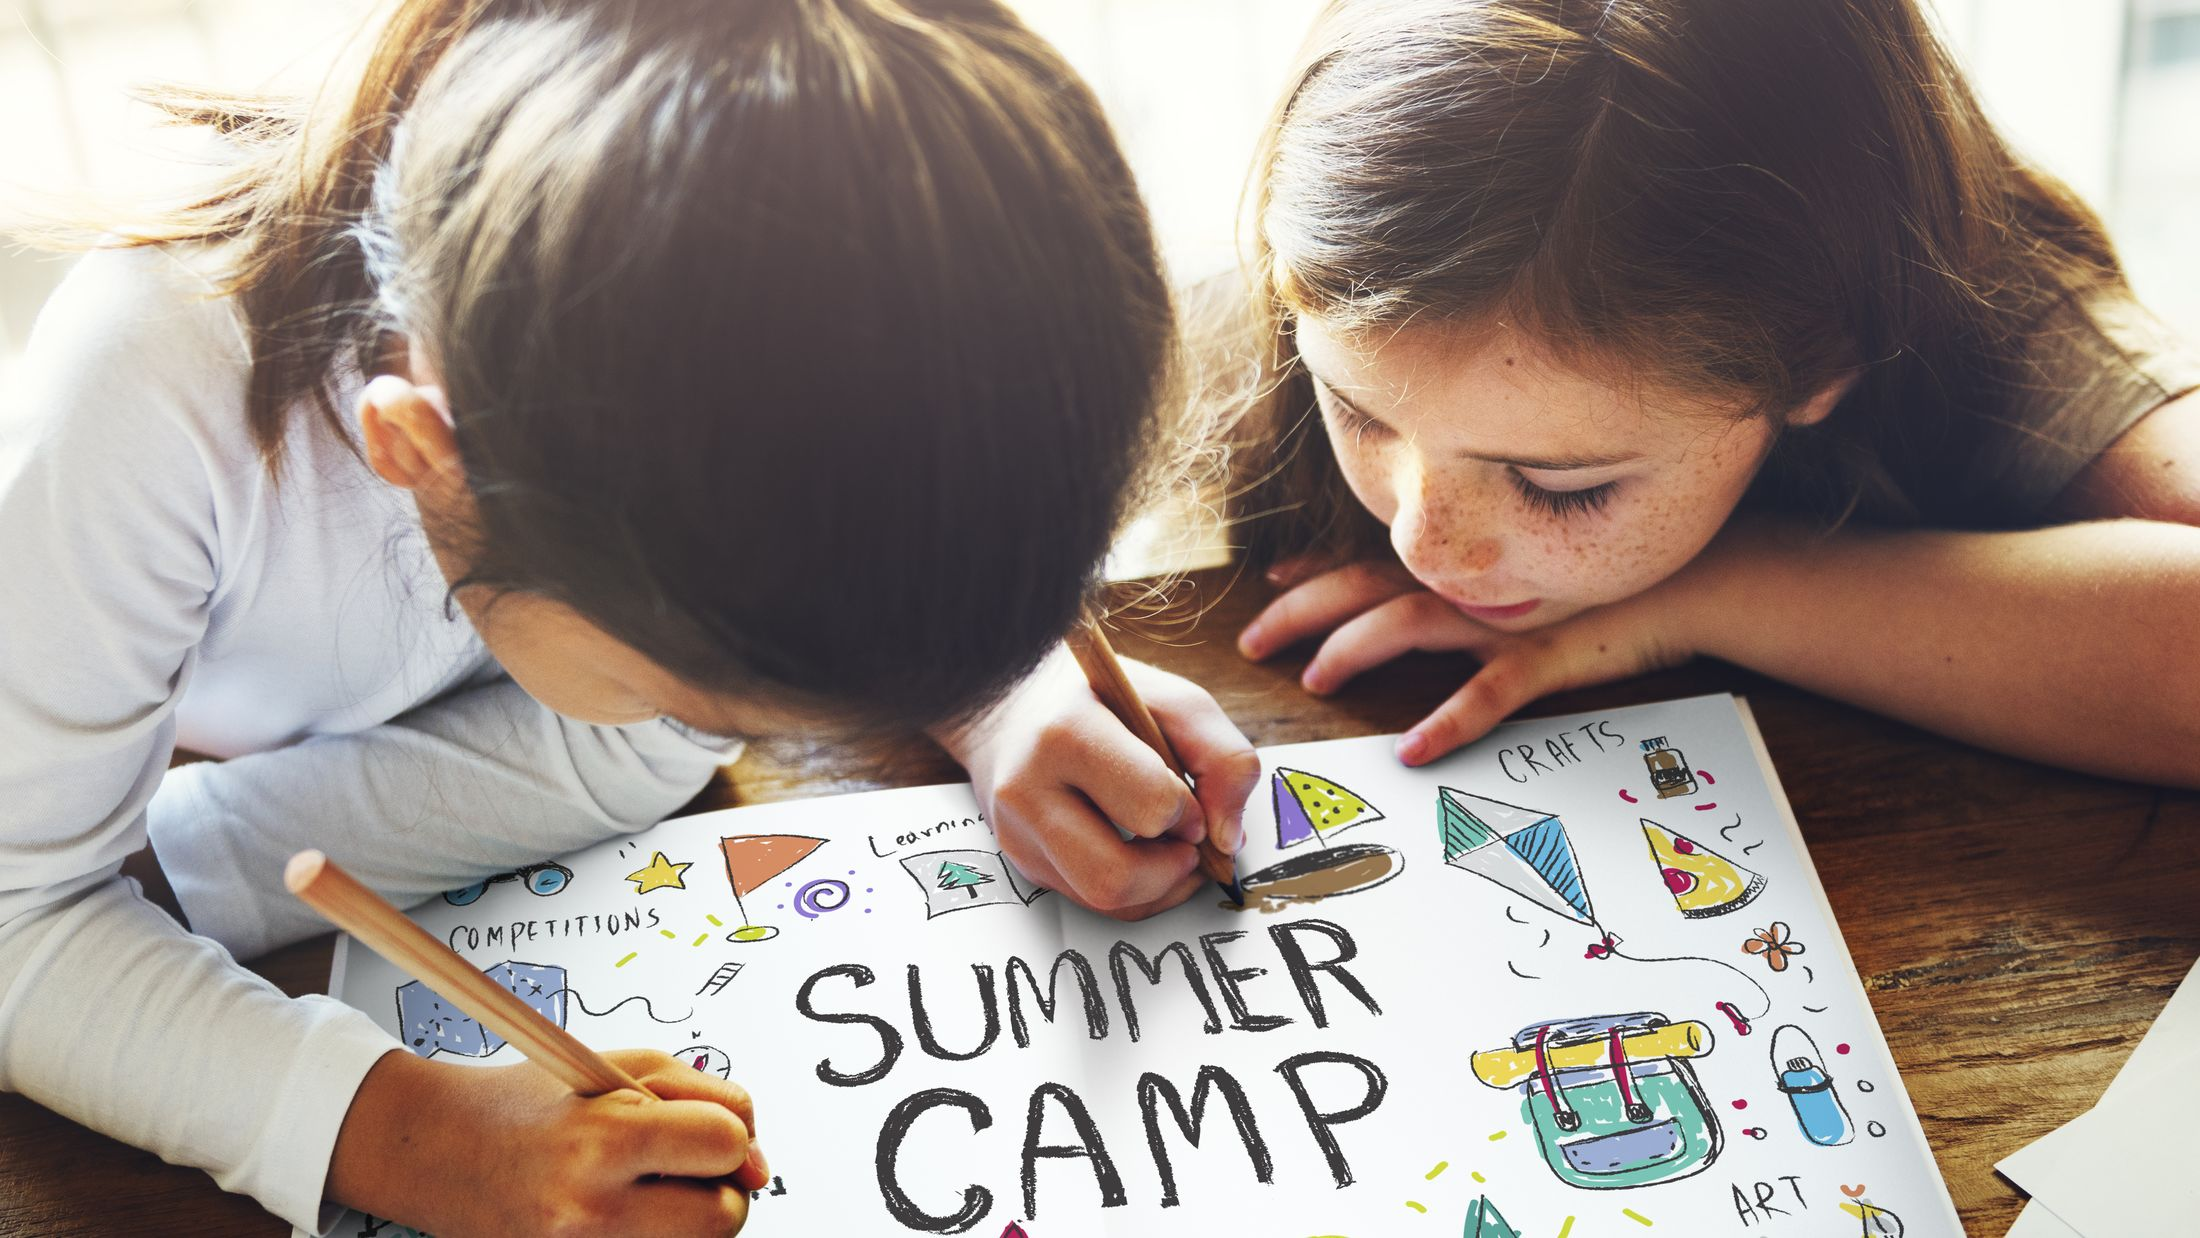 Summer Kids Camp Adventure Explore Concept; Shutterstock ID 446930167; PO: Project Italy - Facilities images; Job: Project Italy - Facilities images; Client: H&J/Citalia